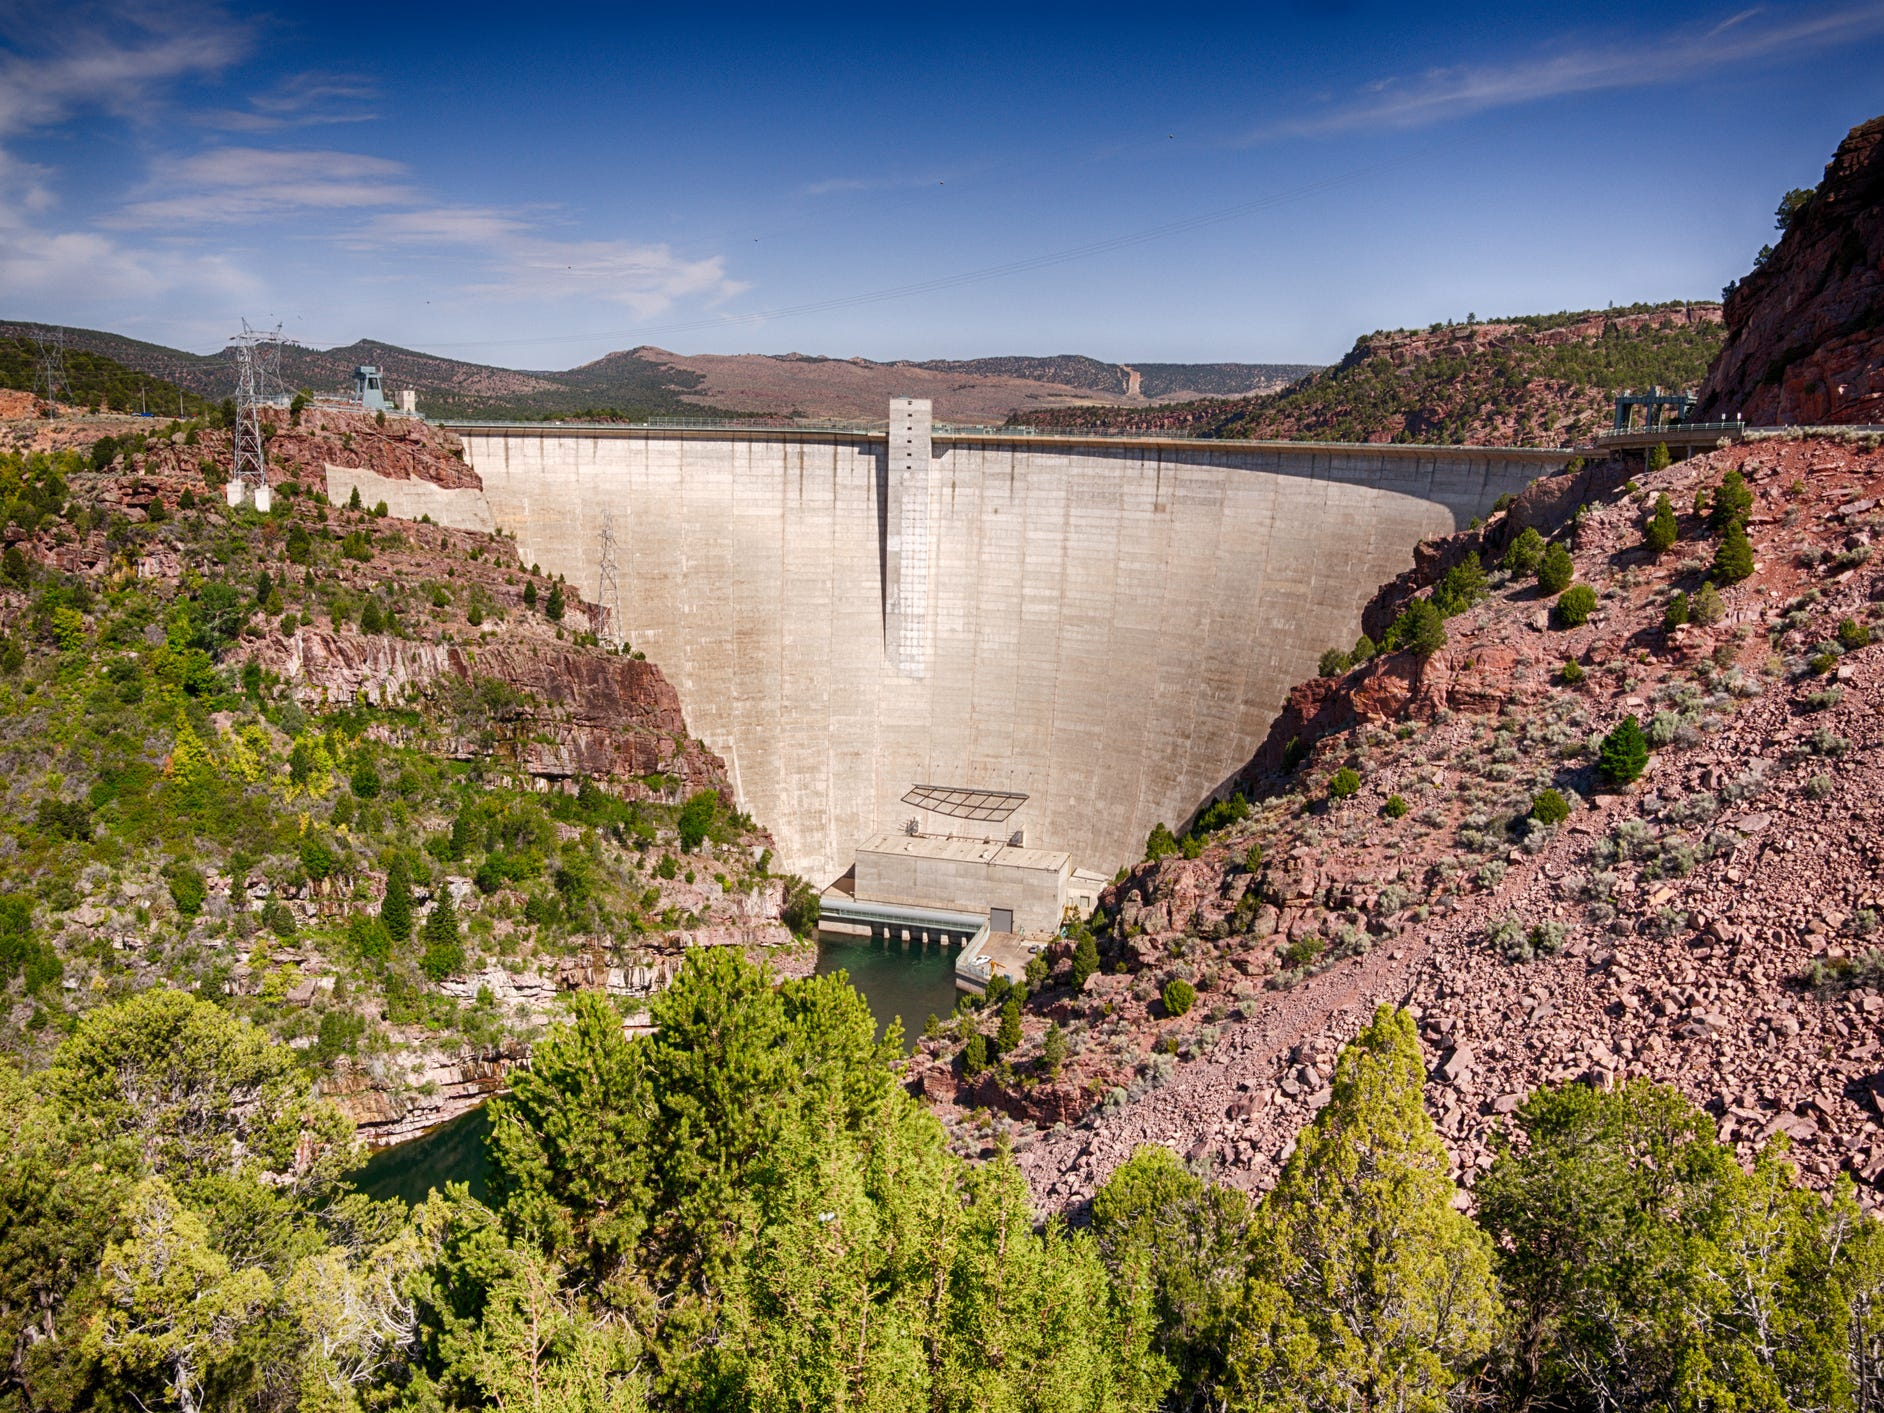 Flaming Gorge Dam in Utah.